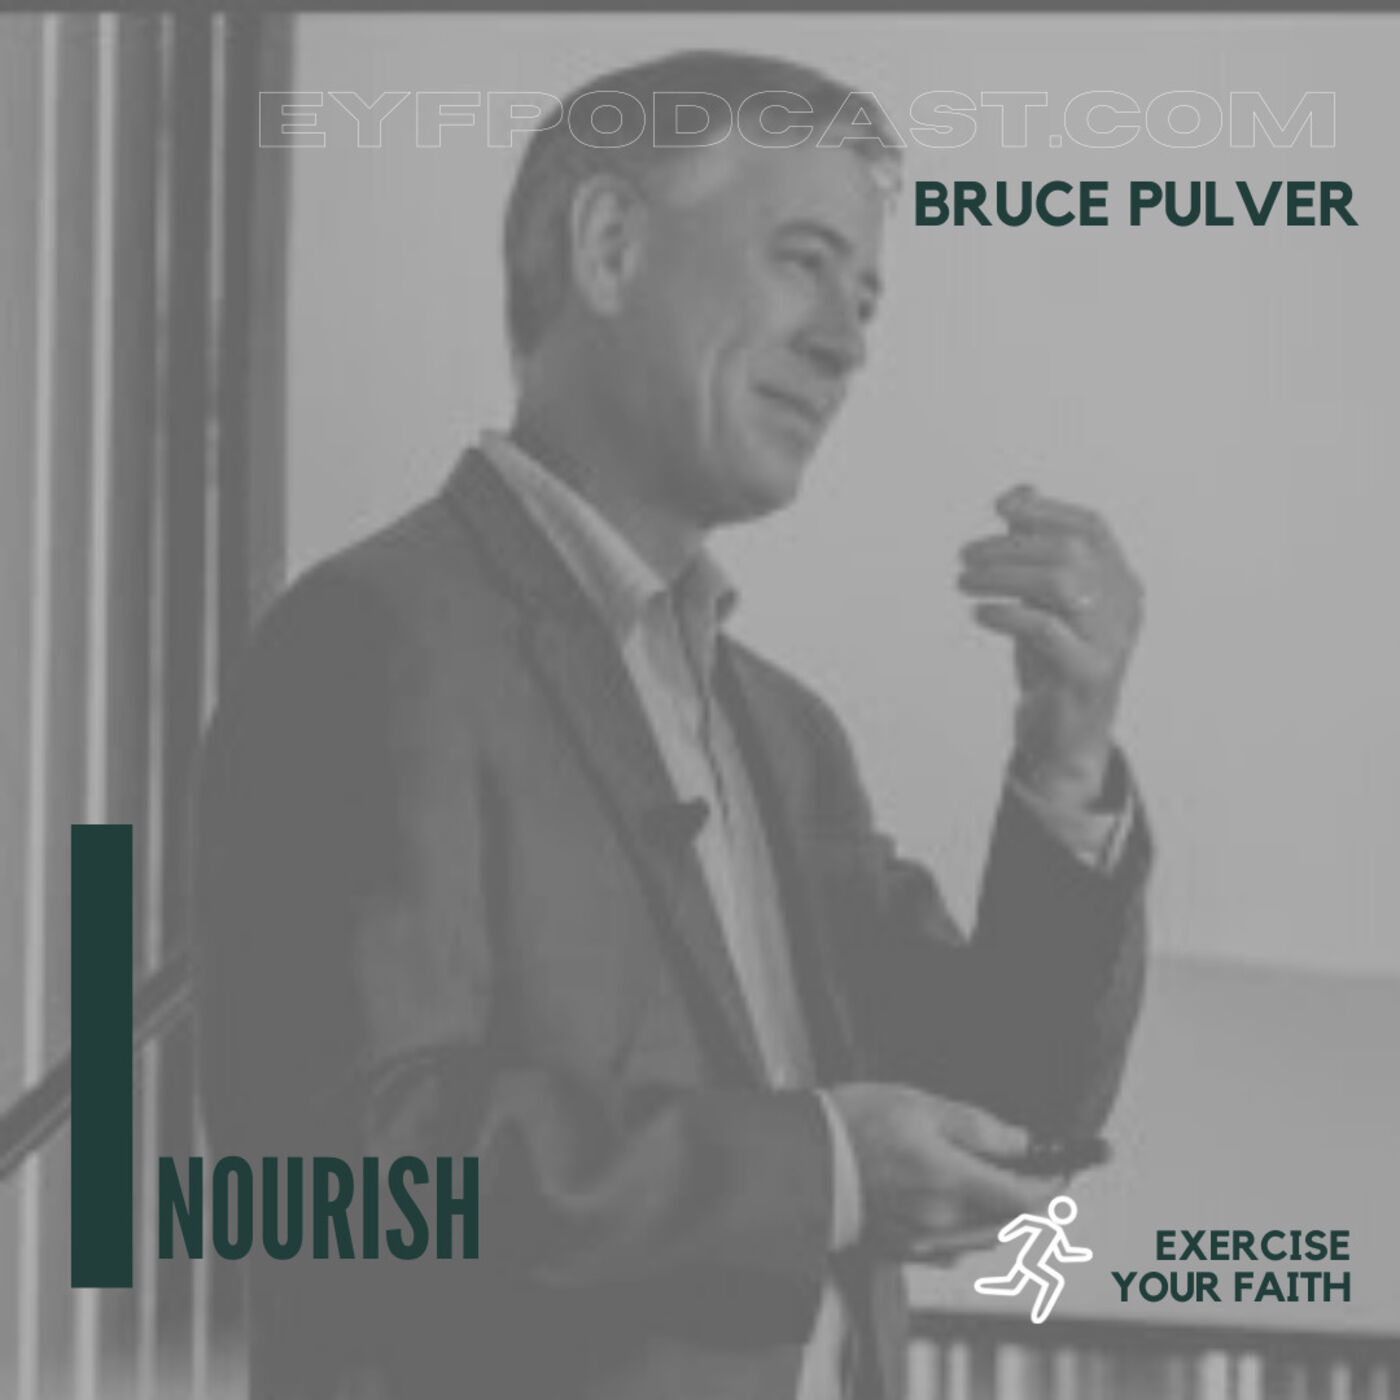 EYFPodcast- Exercise Your Faith with Bruce Pulver today and NOURISH Yourself